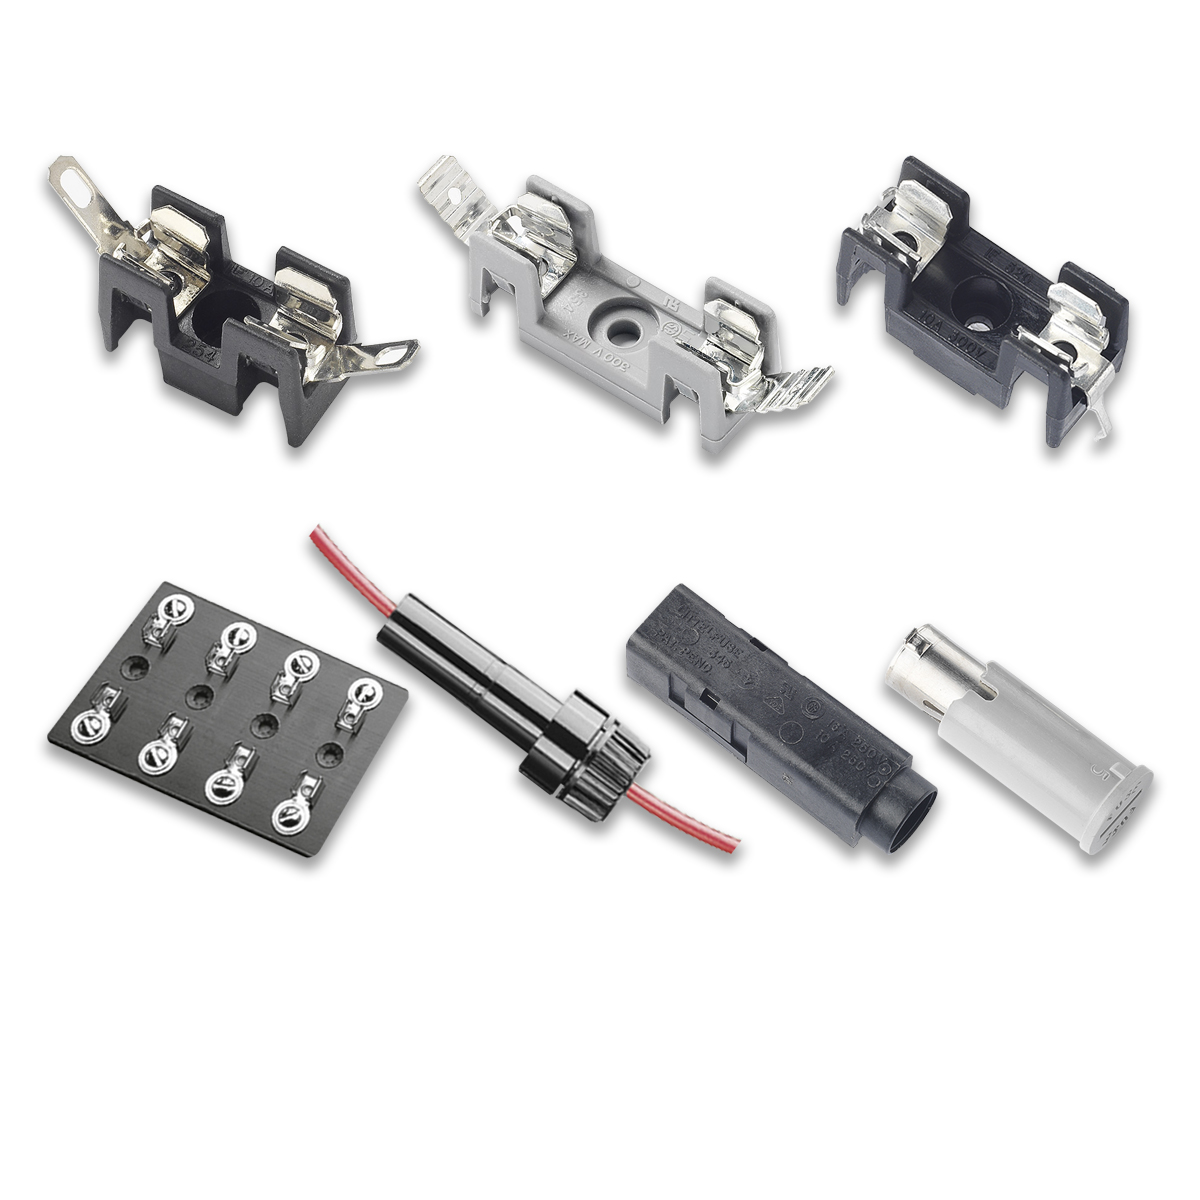 Electrical Fuse Block Holders Trusted Wiring Diagrams Bad Box New Blocks And From Littelfuse Eliminate The Necessity Rh Com Amp For Power Wire Sizes 60